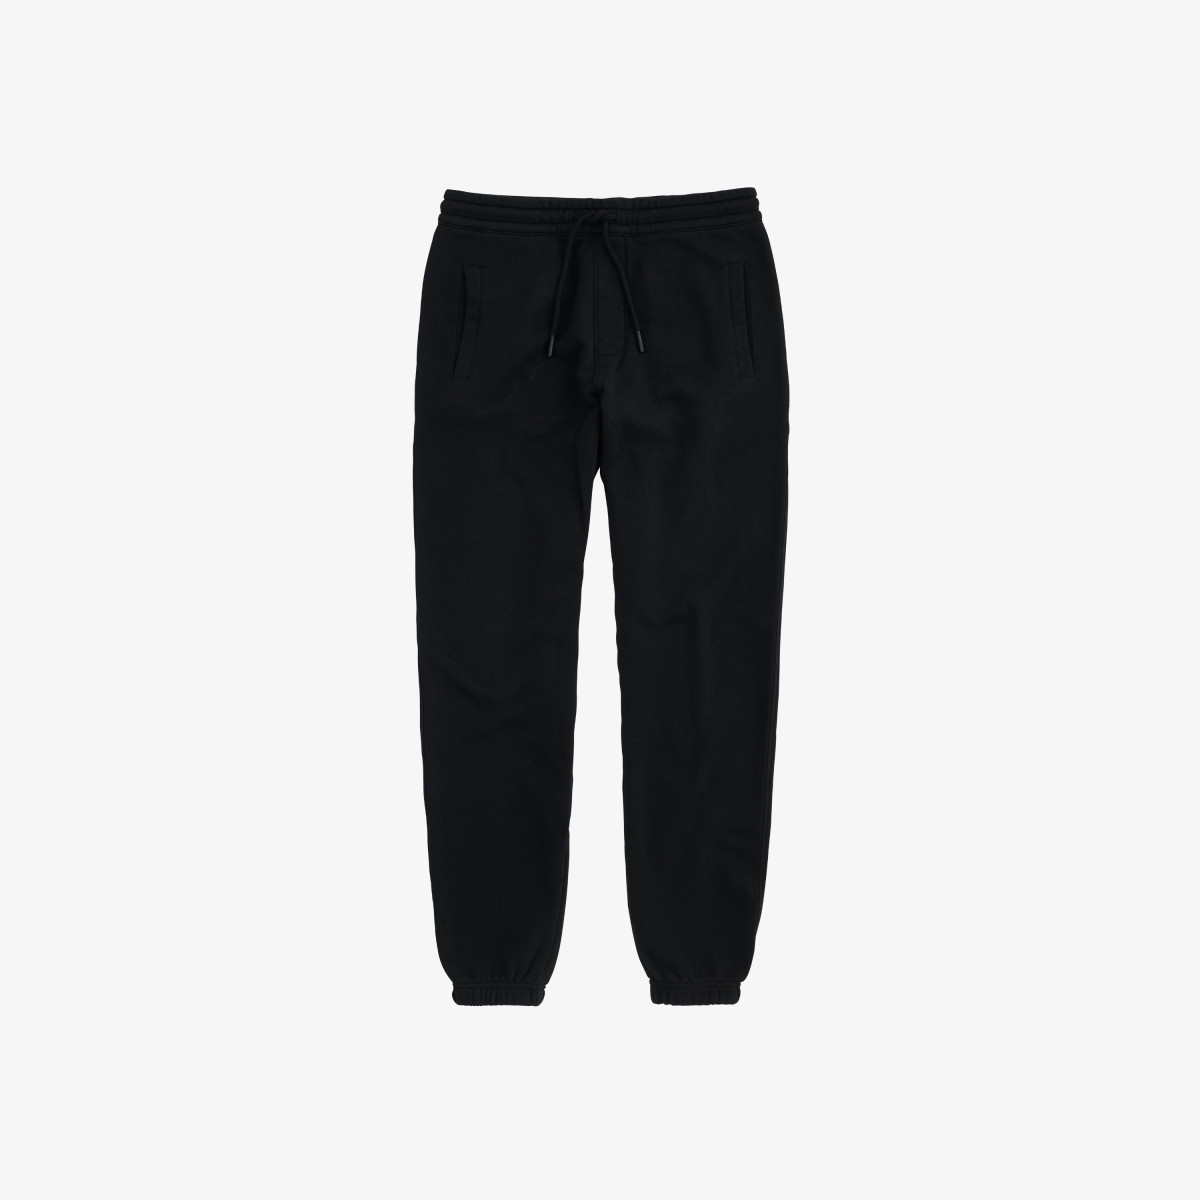 PANT LONG COTT. FL. NERO